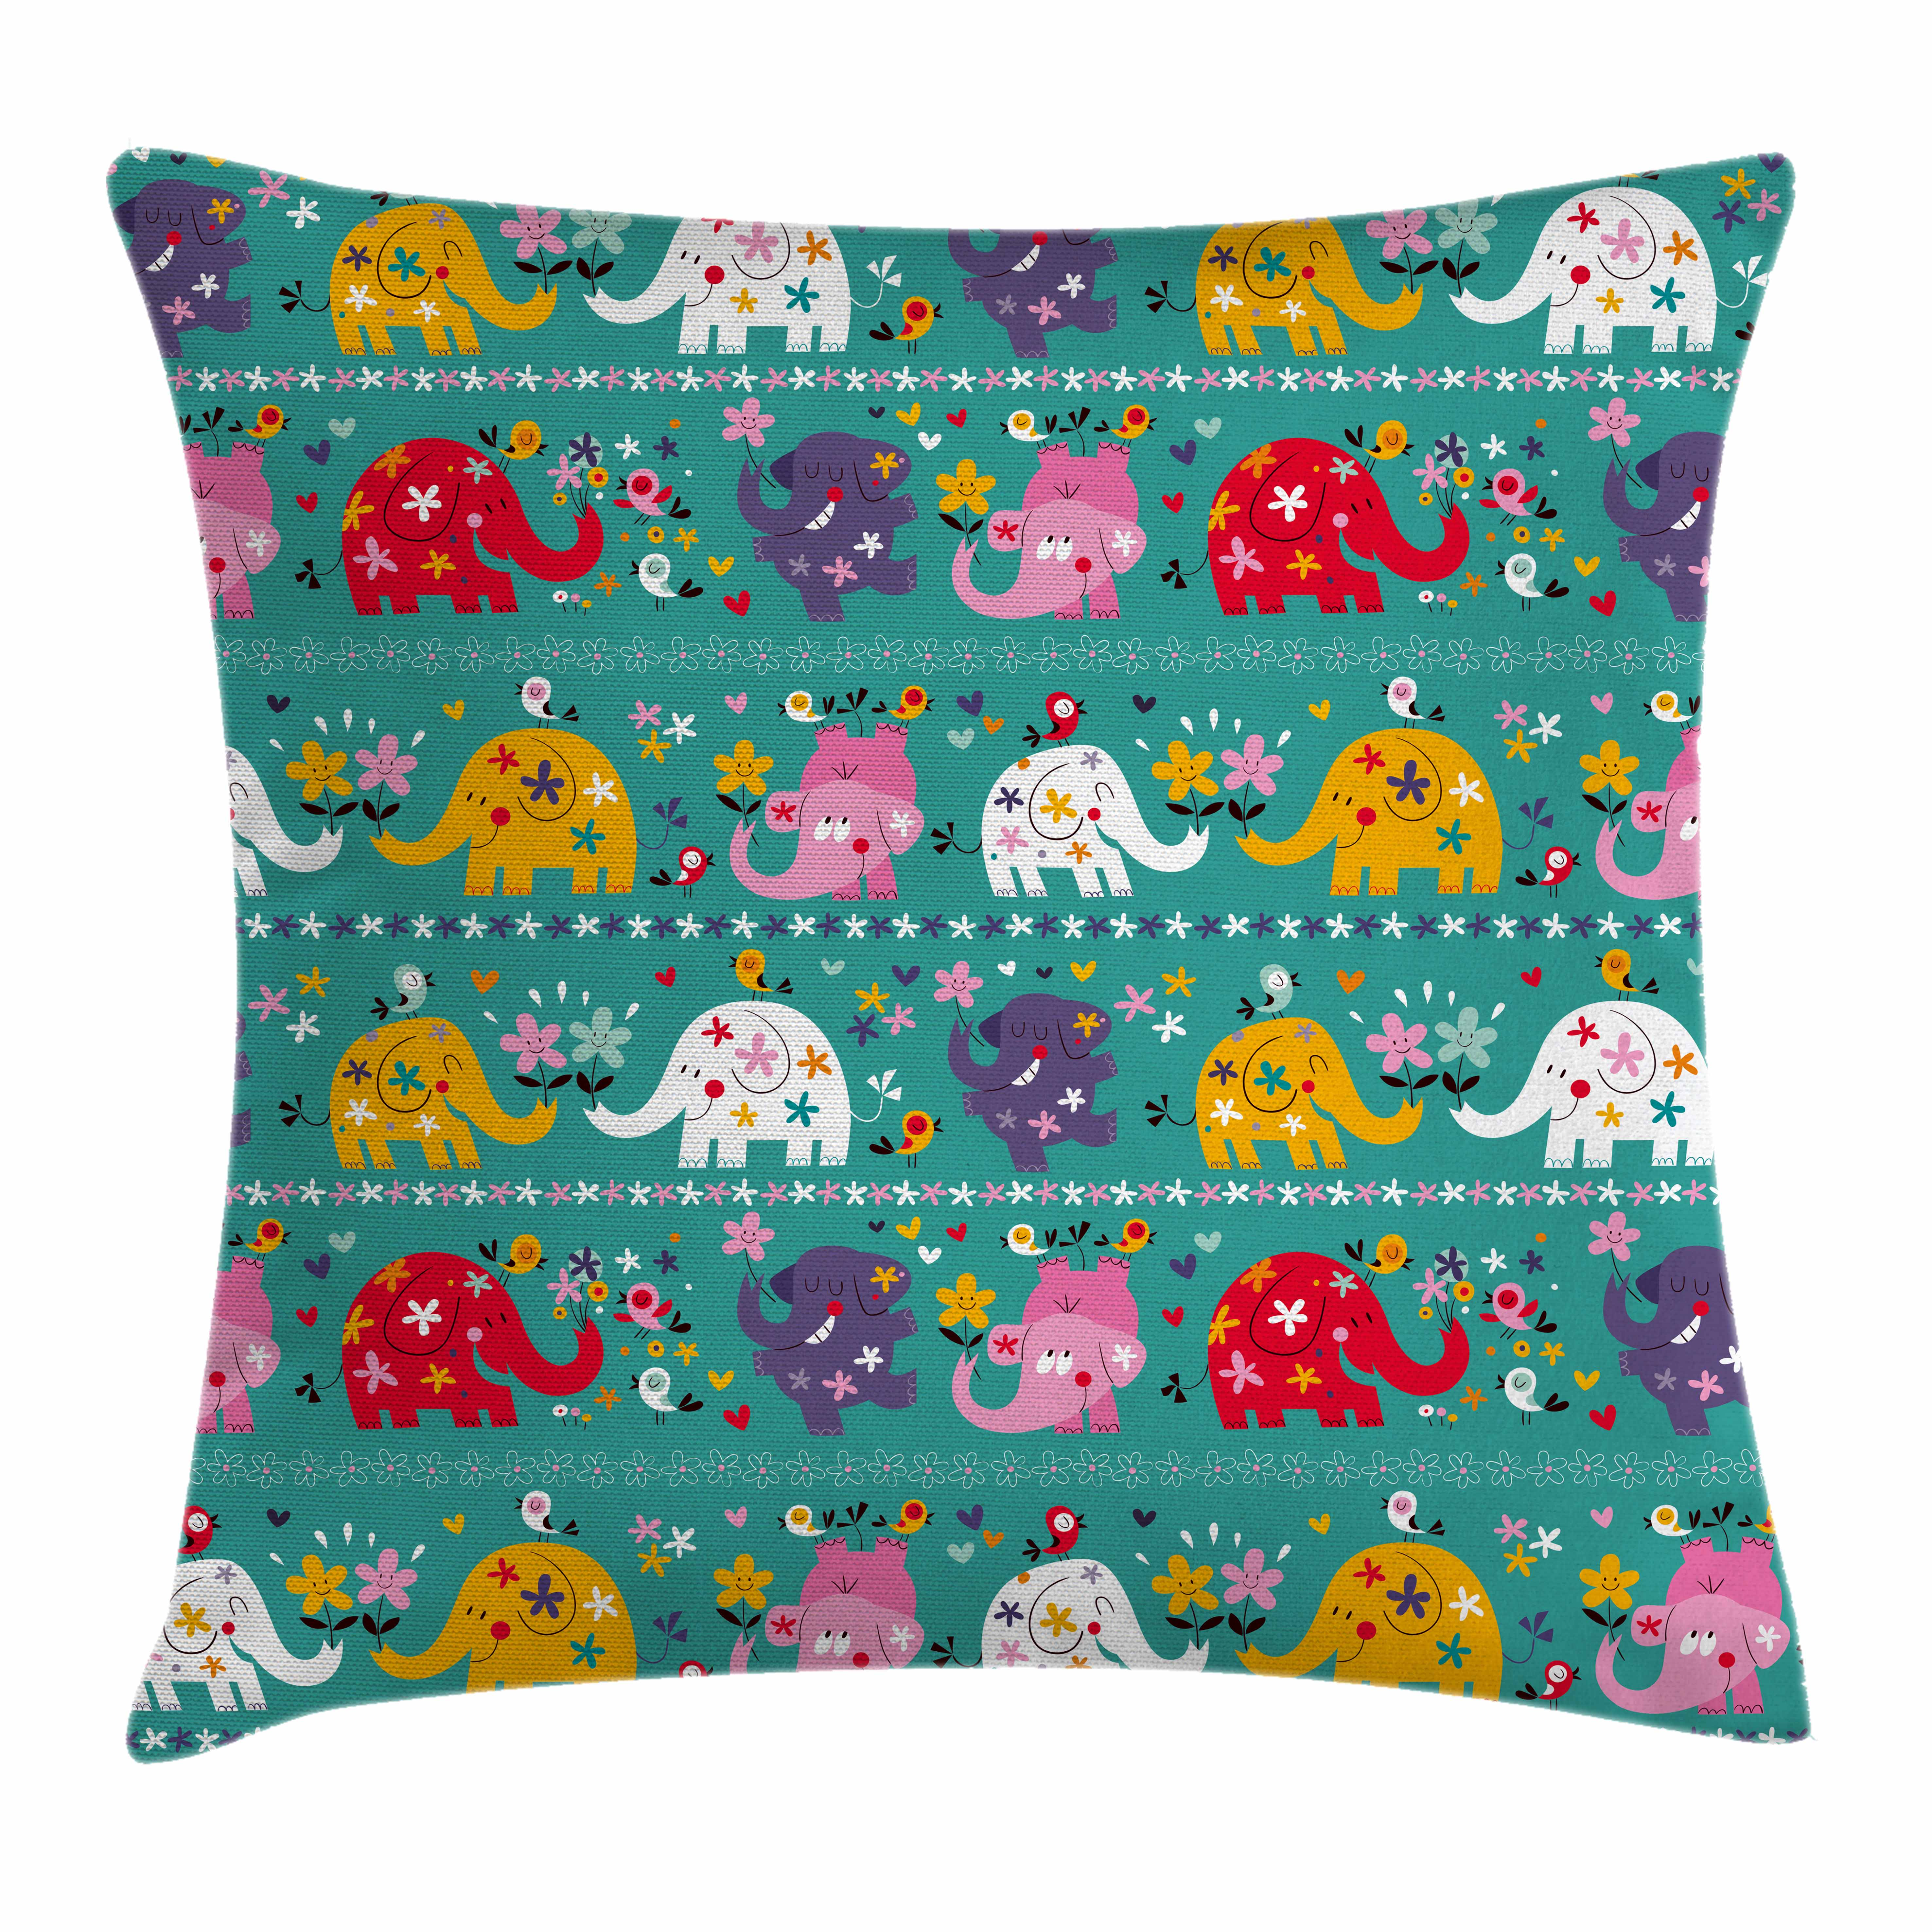 Elephant Nursery Decor Throw Pillow Cushion Cover, Joyful Kids Pattern Festive Colorful Animals Flowers Funny Nature, Decorative Square Accent Pillow Case, 16 X 16 Inches, Multicolor, by Ambesonne